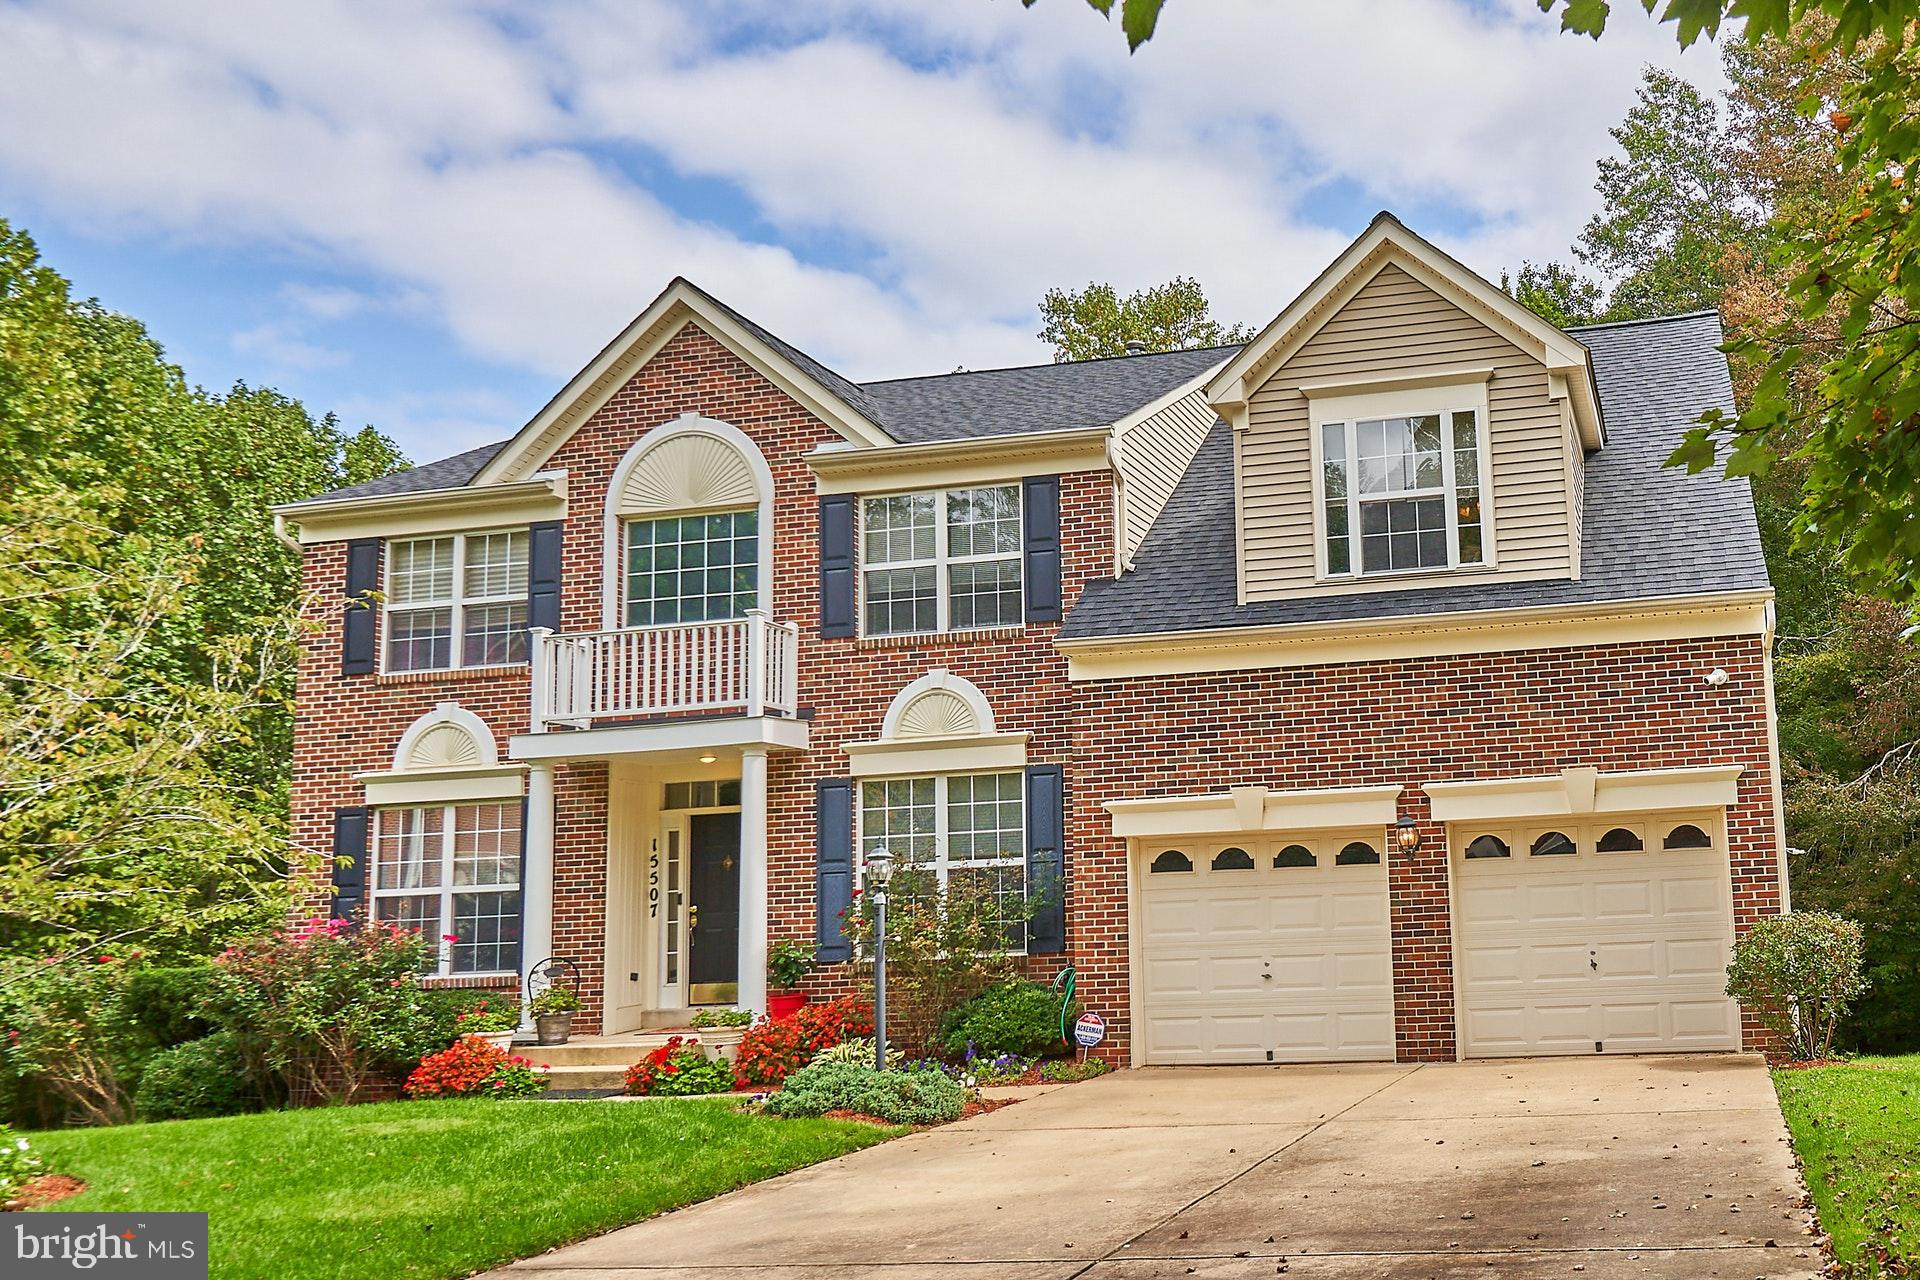 OPEN HOUSE SUN 10/4 FROM 1-3PM......Absolutely Immaculate Brick Front Home in Ashland.  Located at t